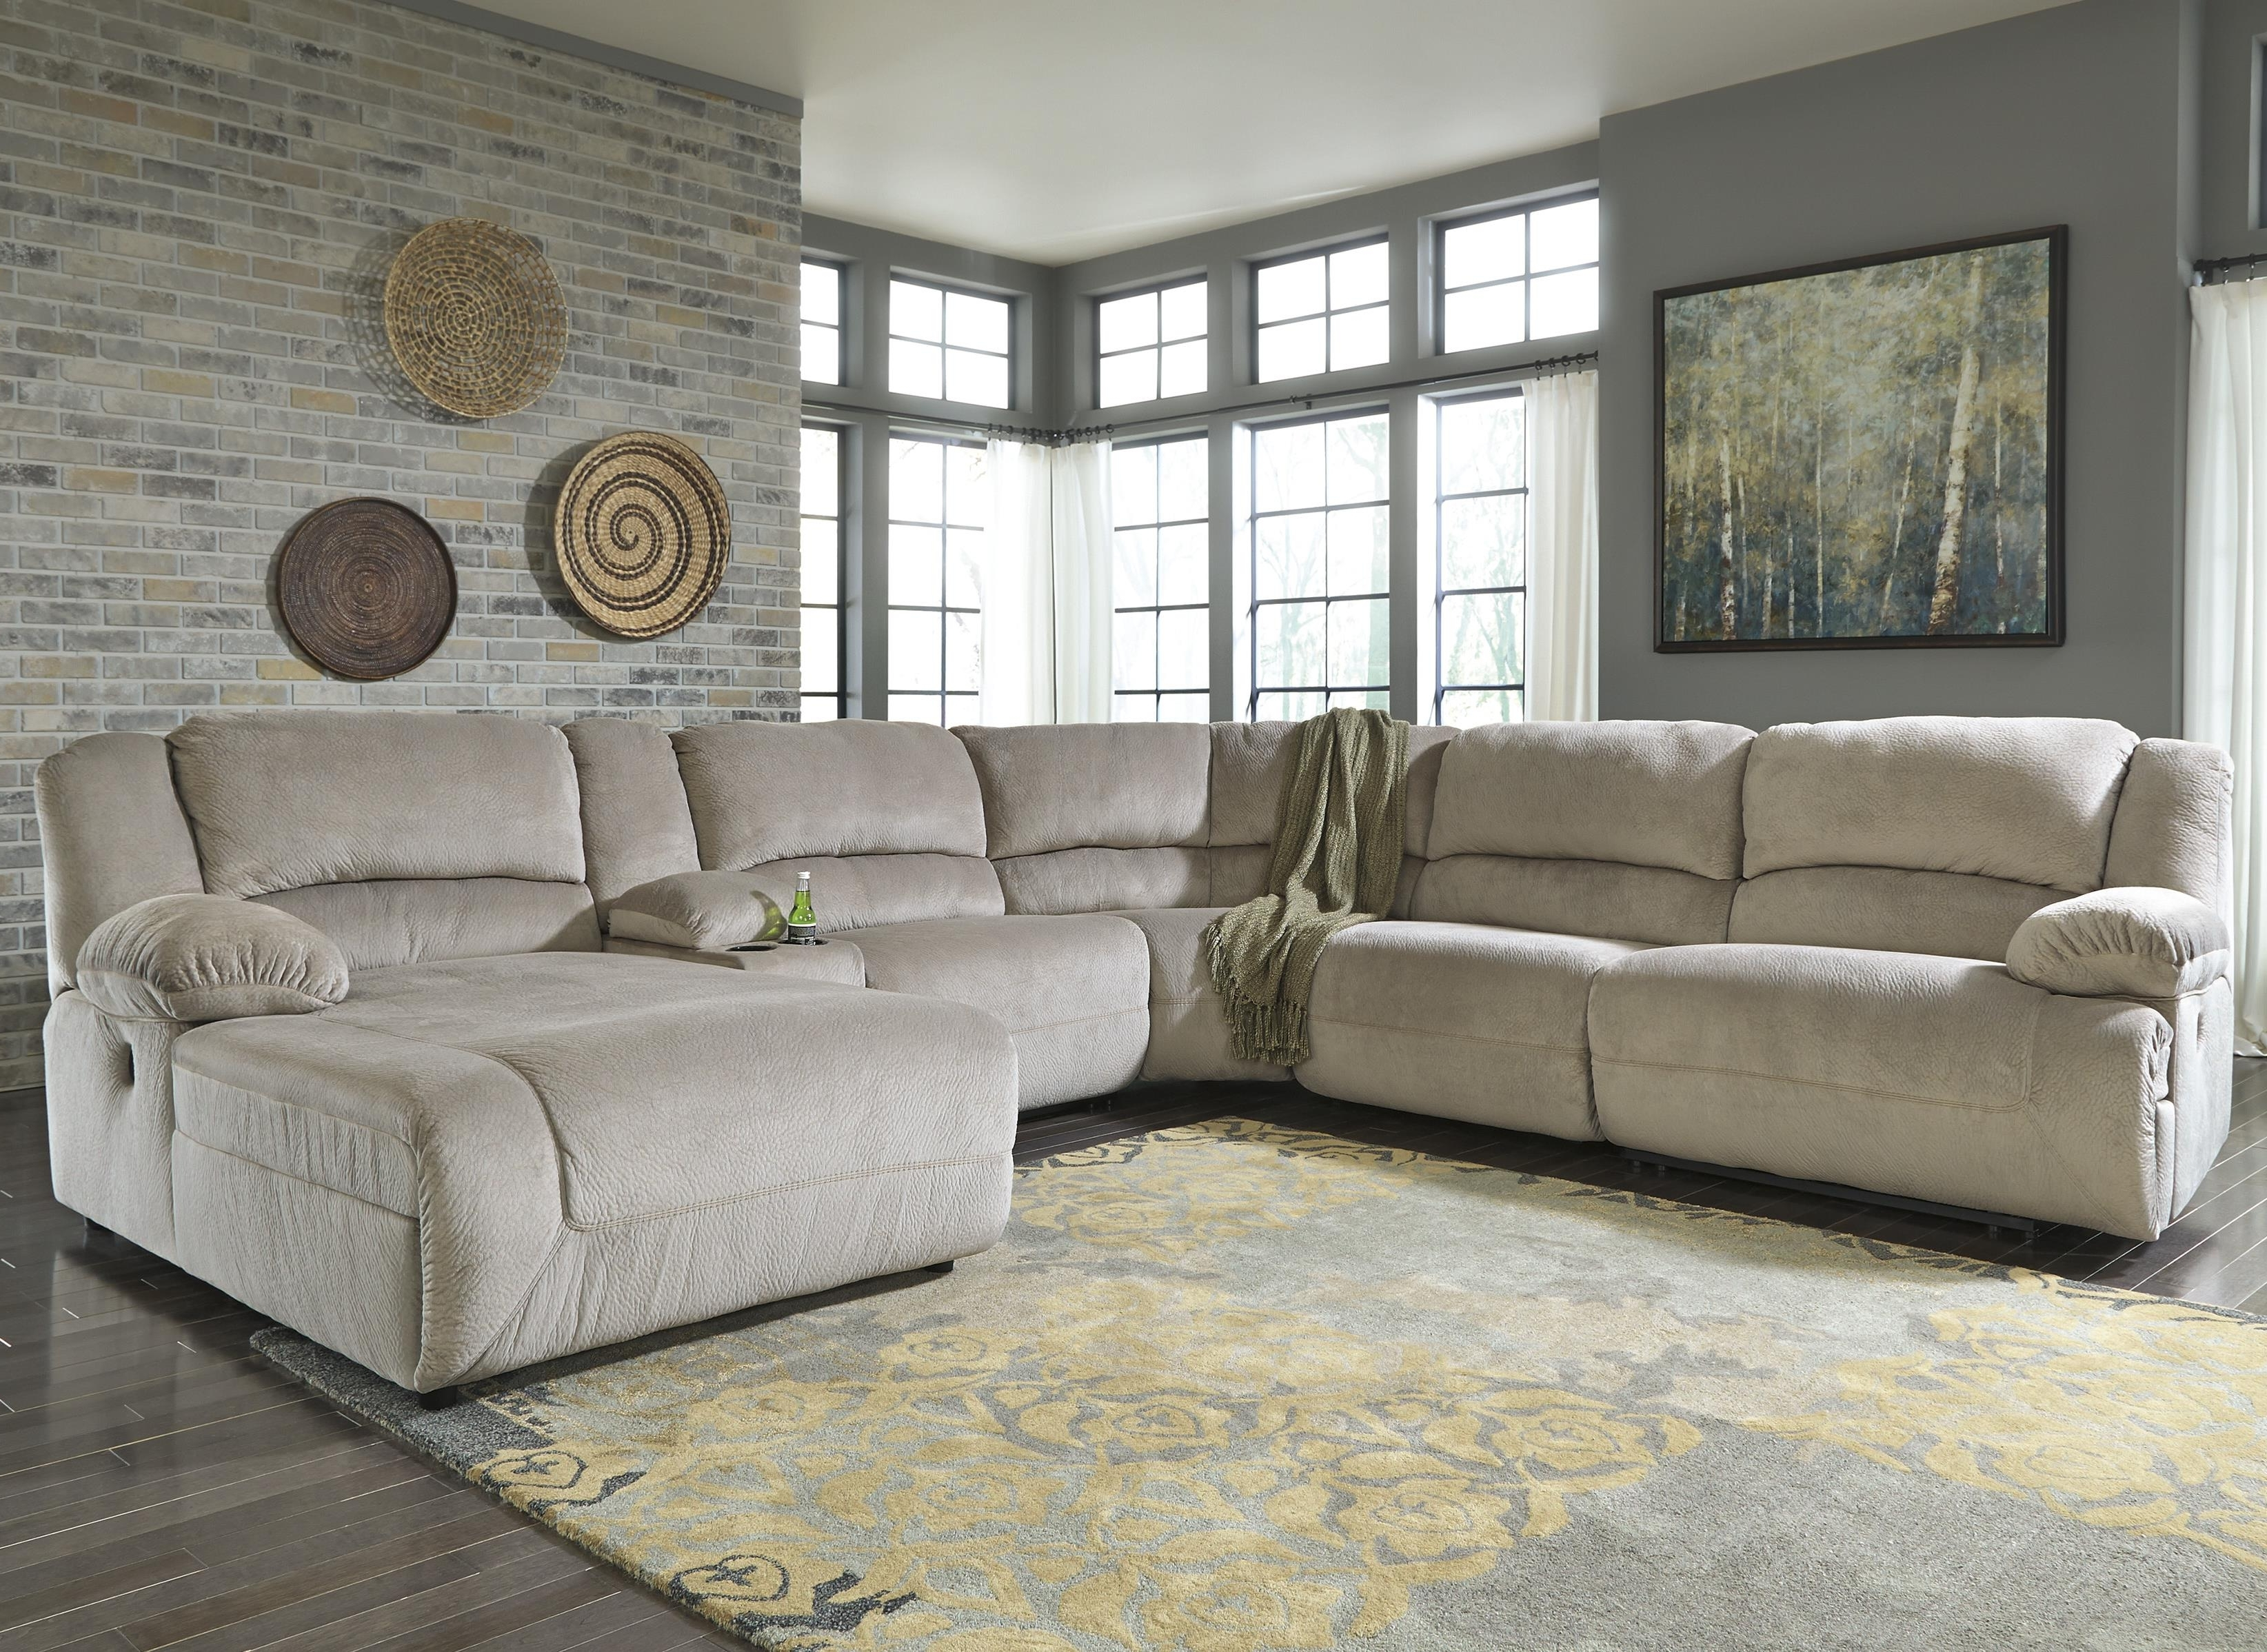 Sectional Sofas That Can Be Rearranged Intended For Most Recent Sofa : Logan Sectional Sofa Setashley Furniture Ashley (View 14 of 20)